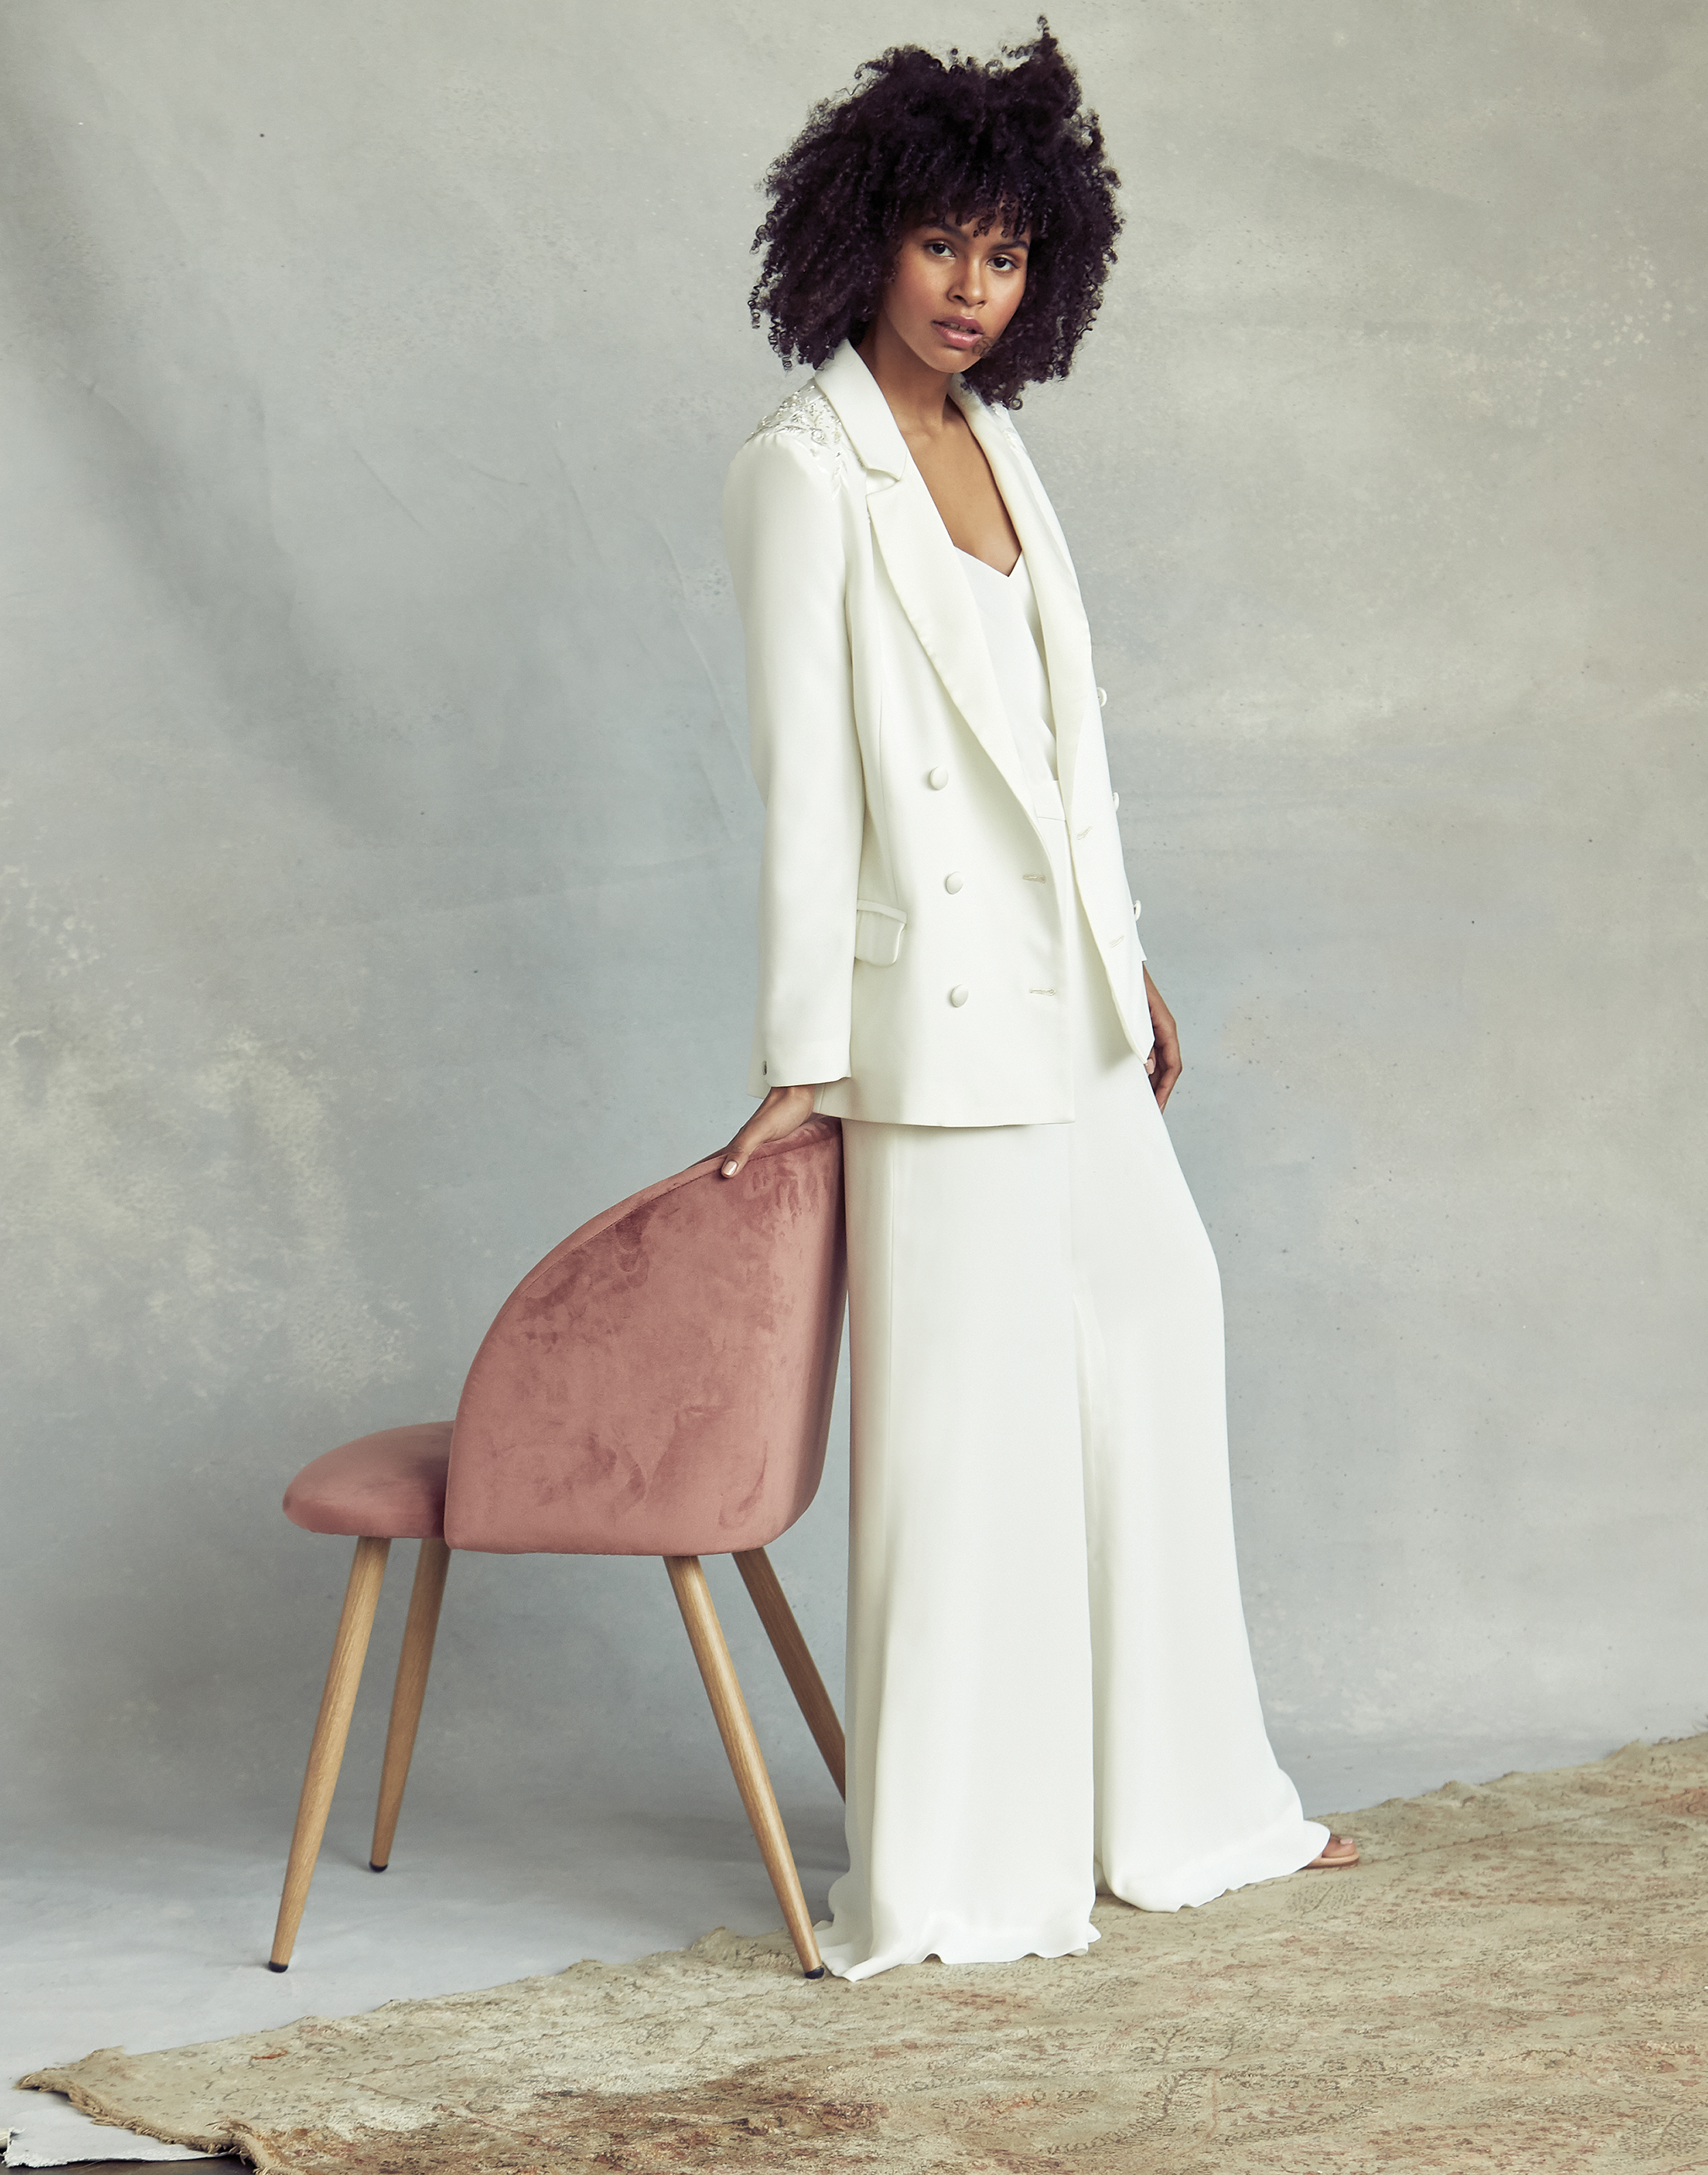 savannah miller pants with jacket wedding dress spring 2020